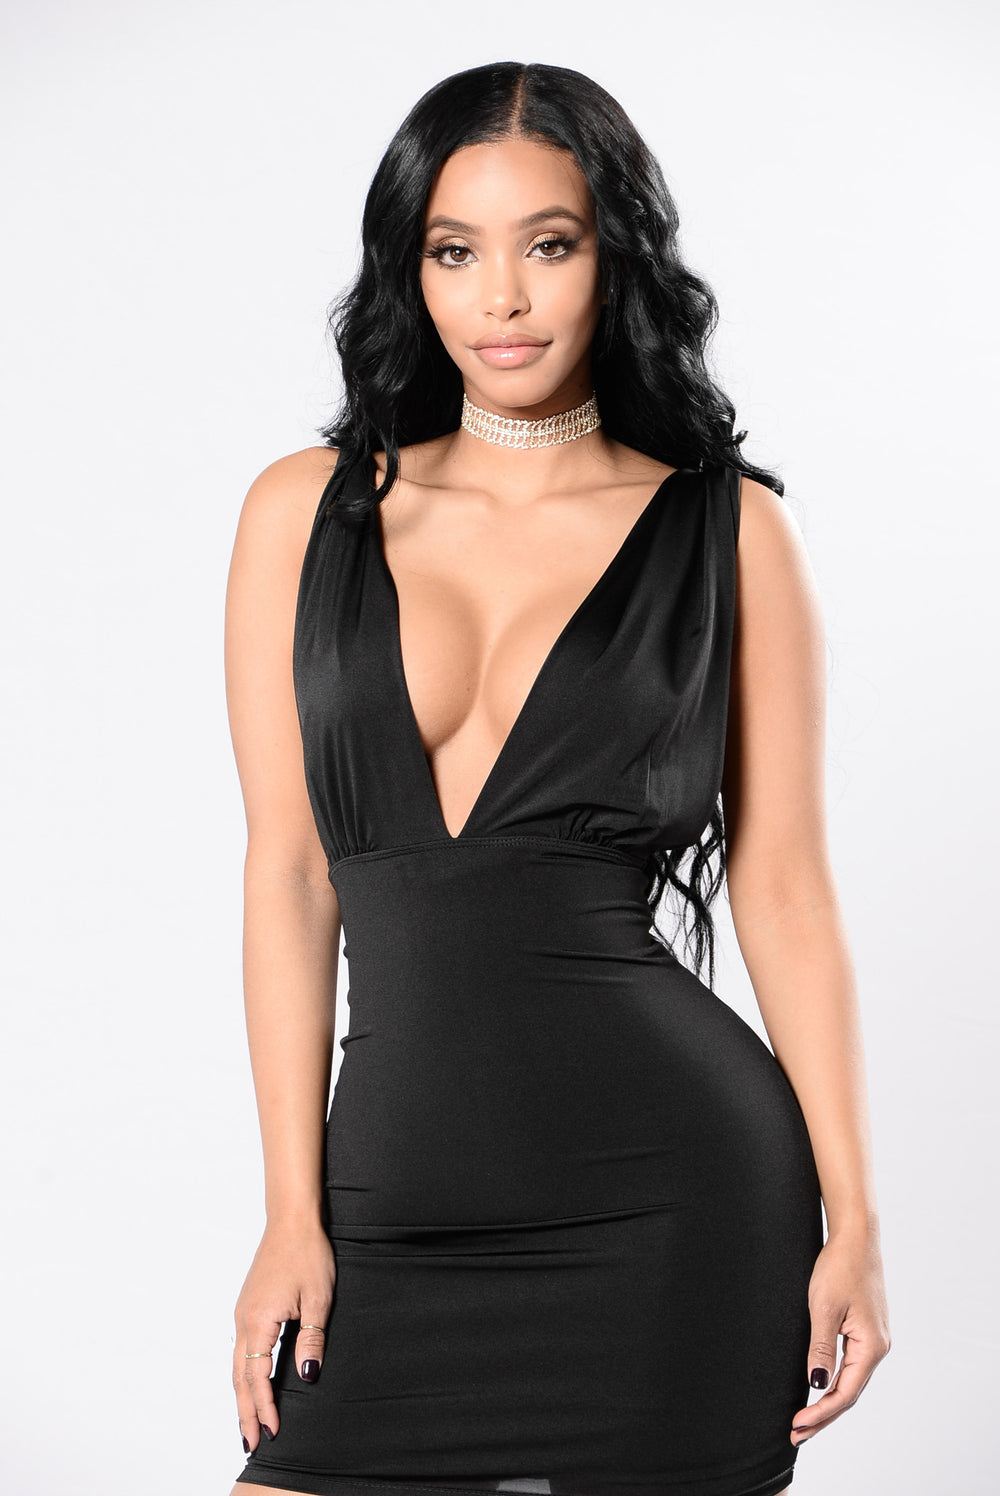 Wildest Moments Dress - Black